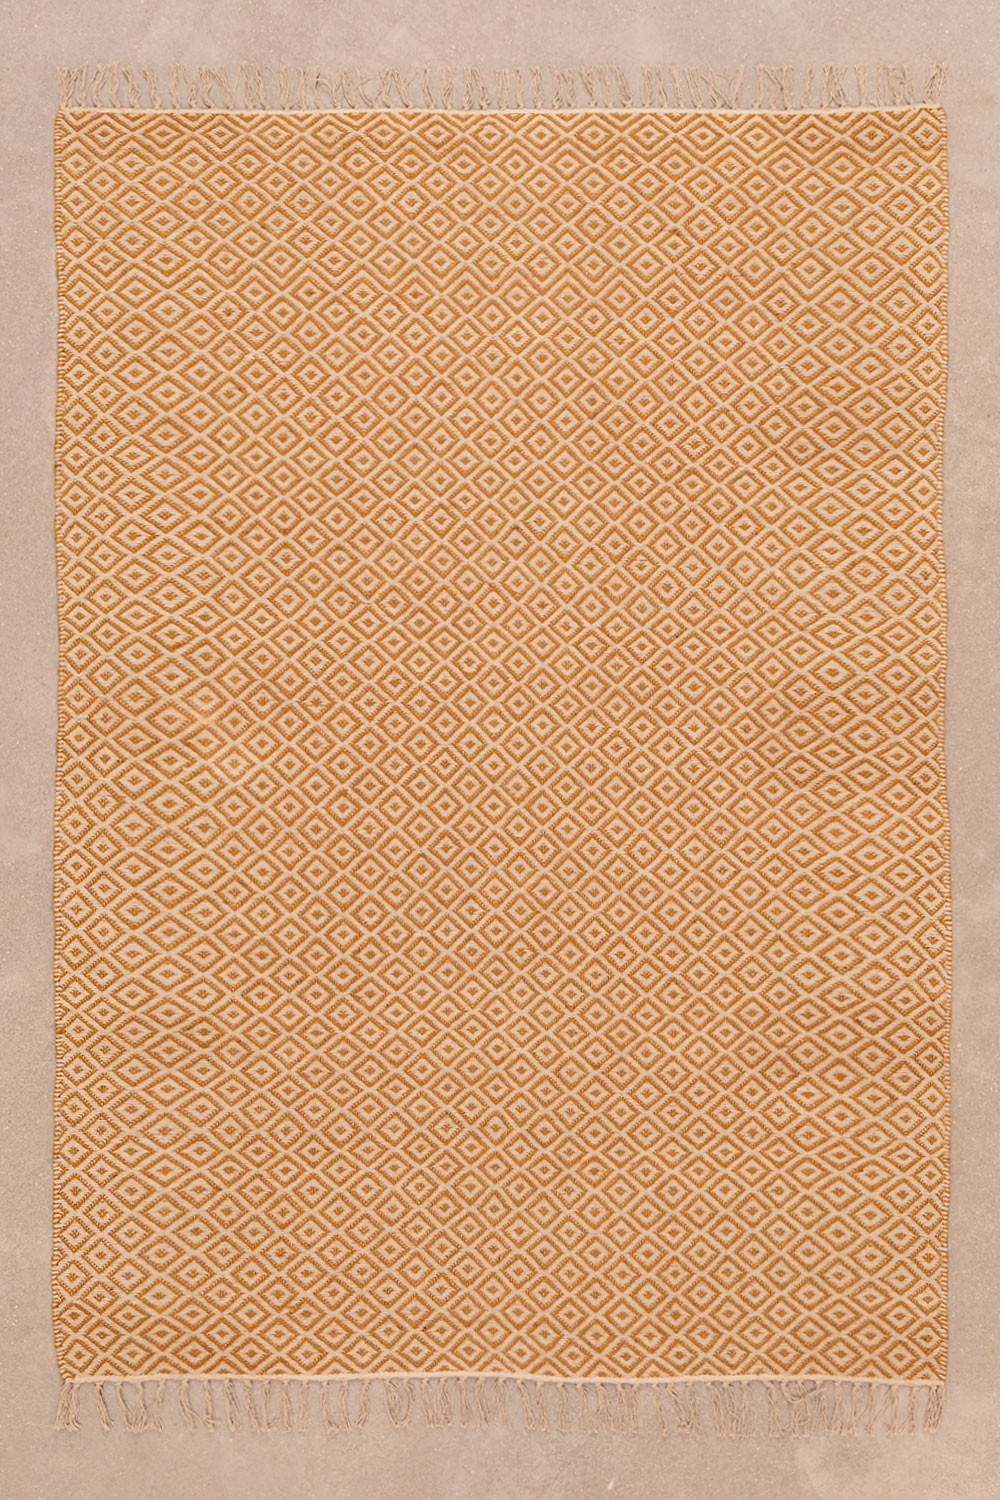 Cotton and Jute Rug (175x120 cm) Durat, gallery image 1